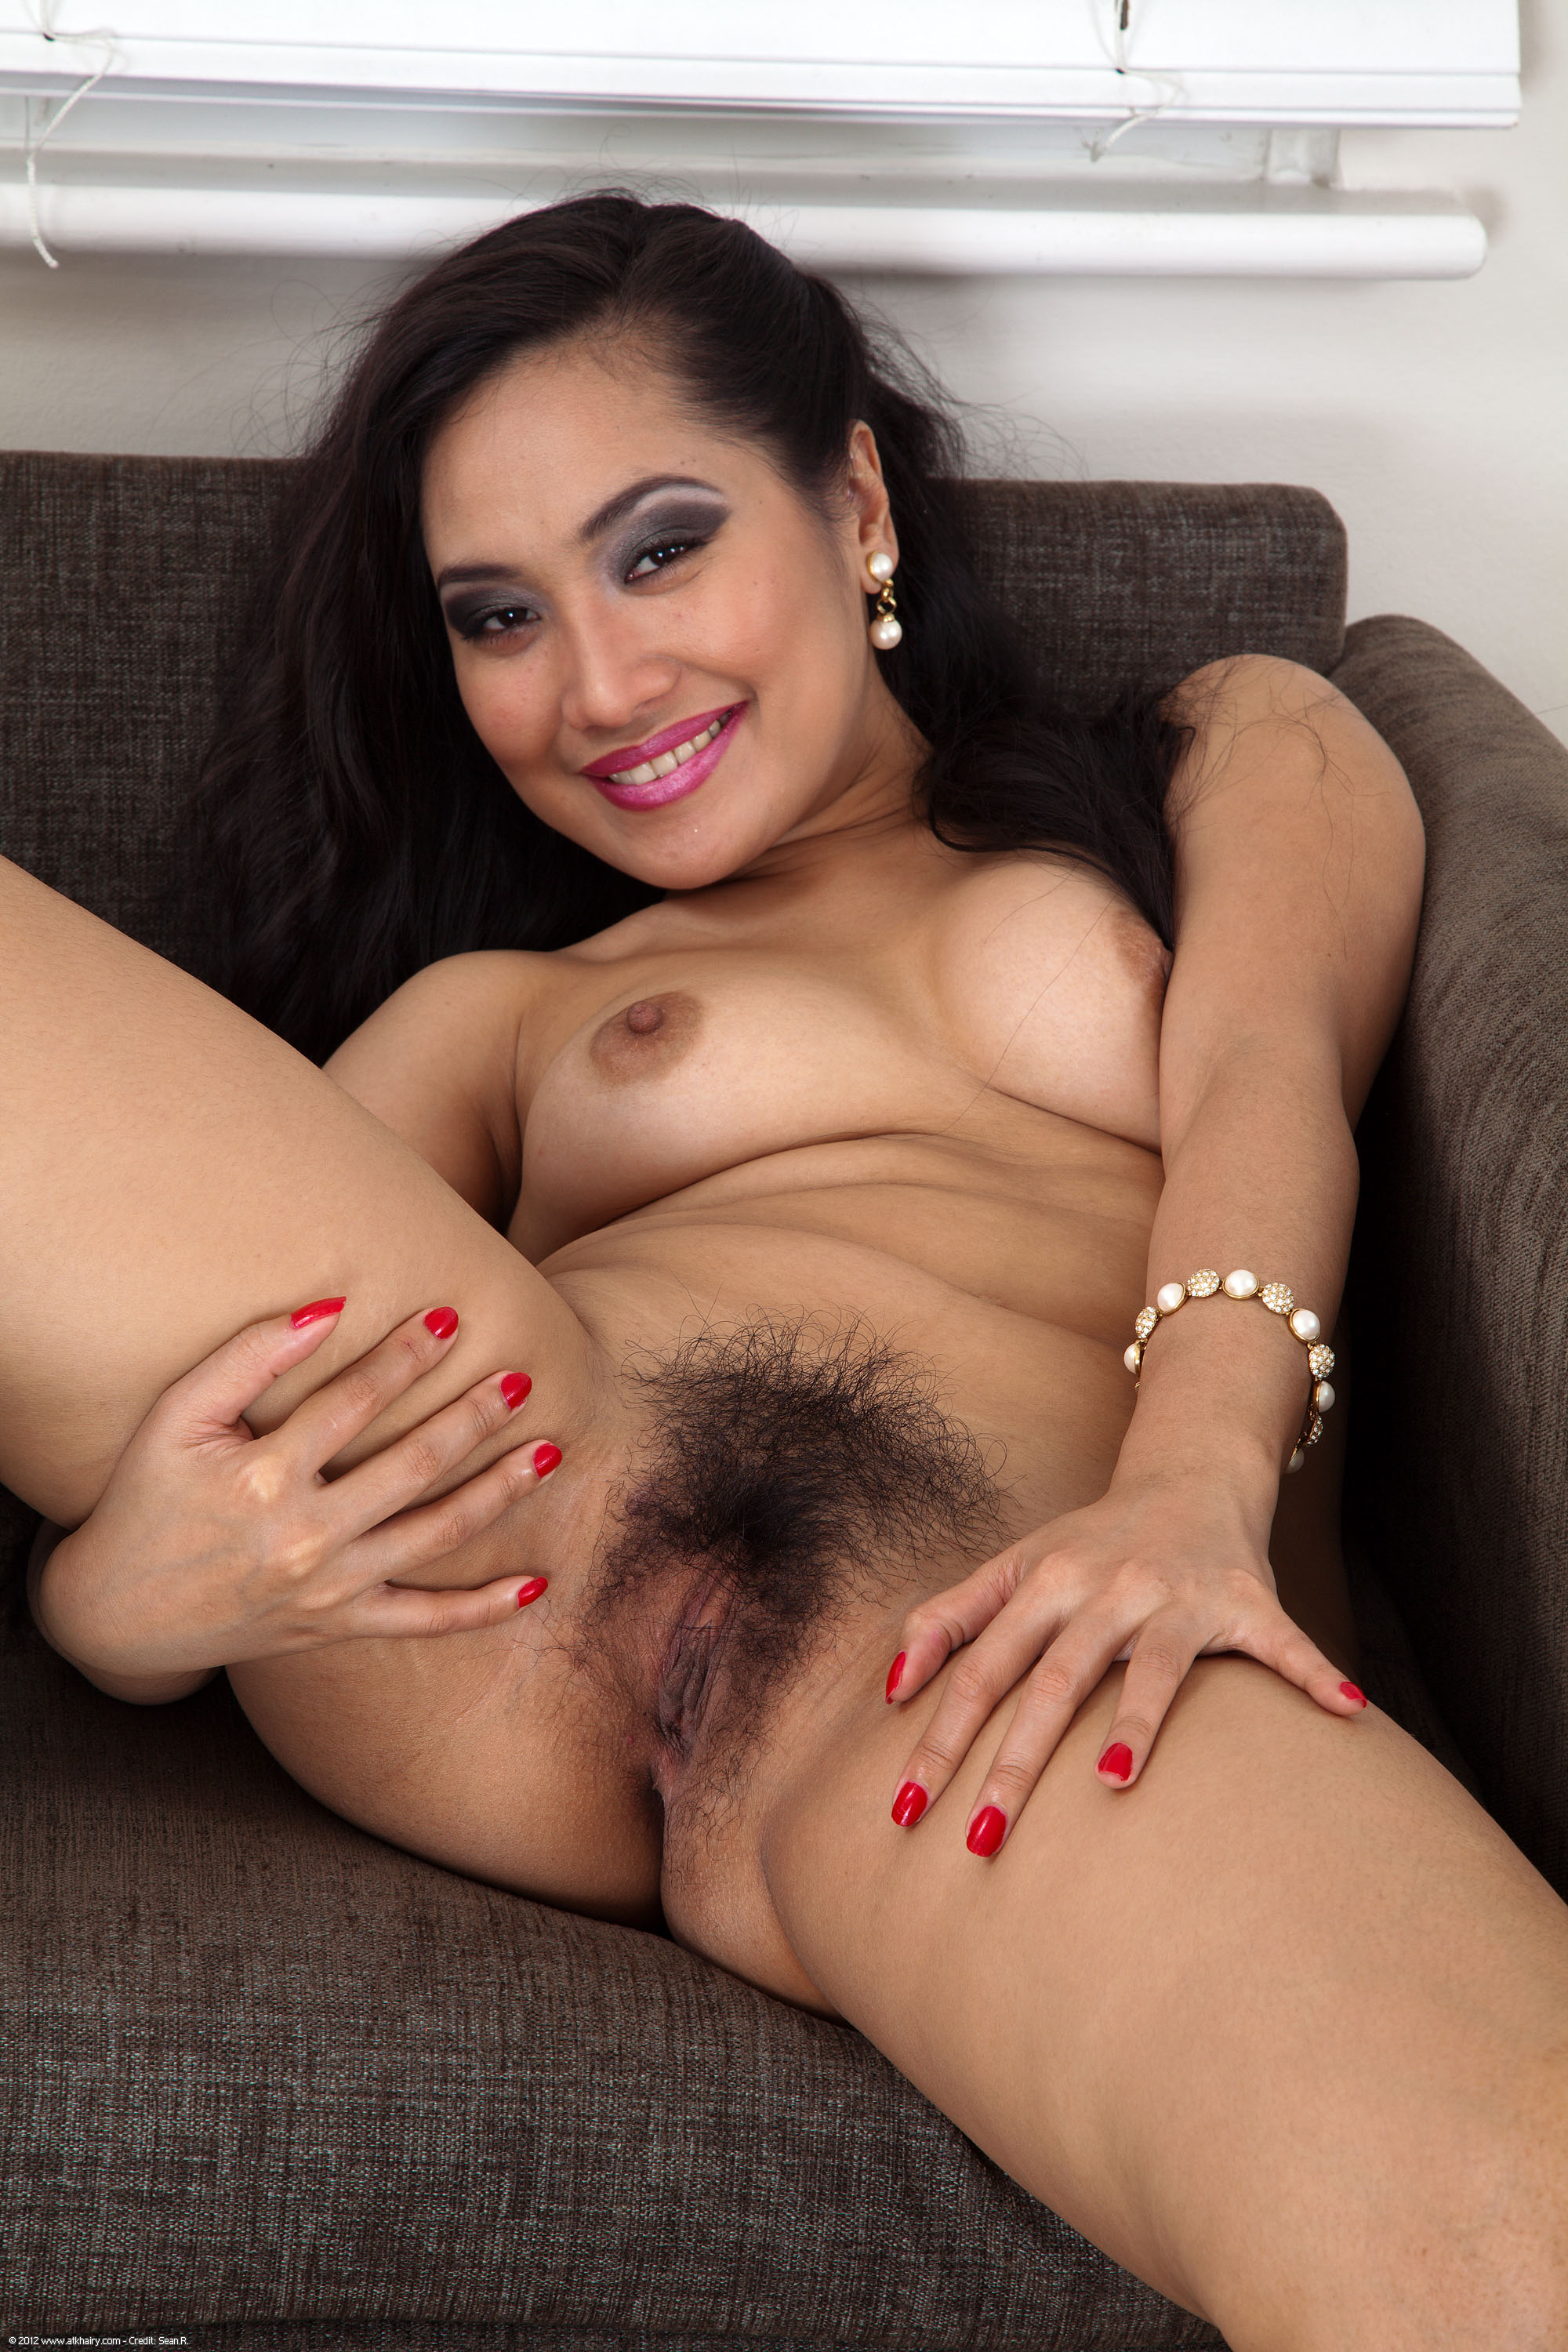 Hairy mexican girl